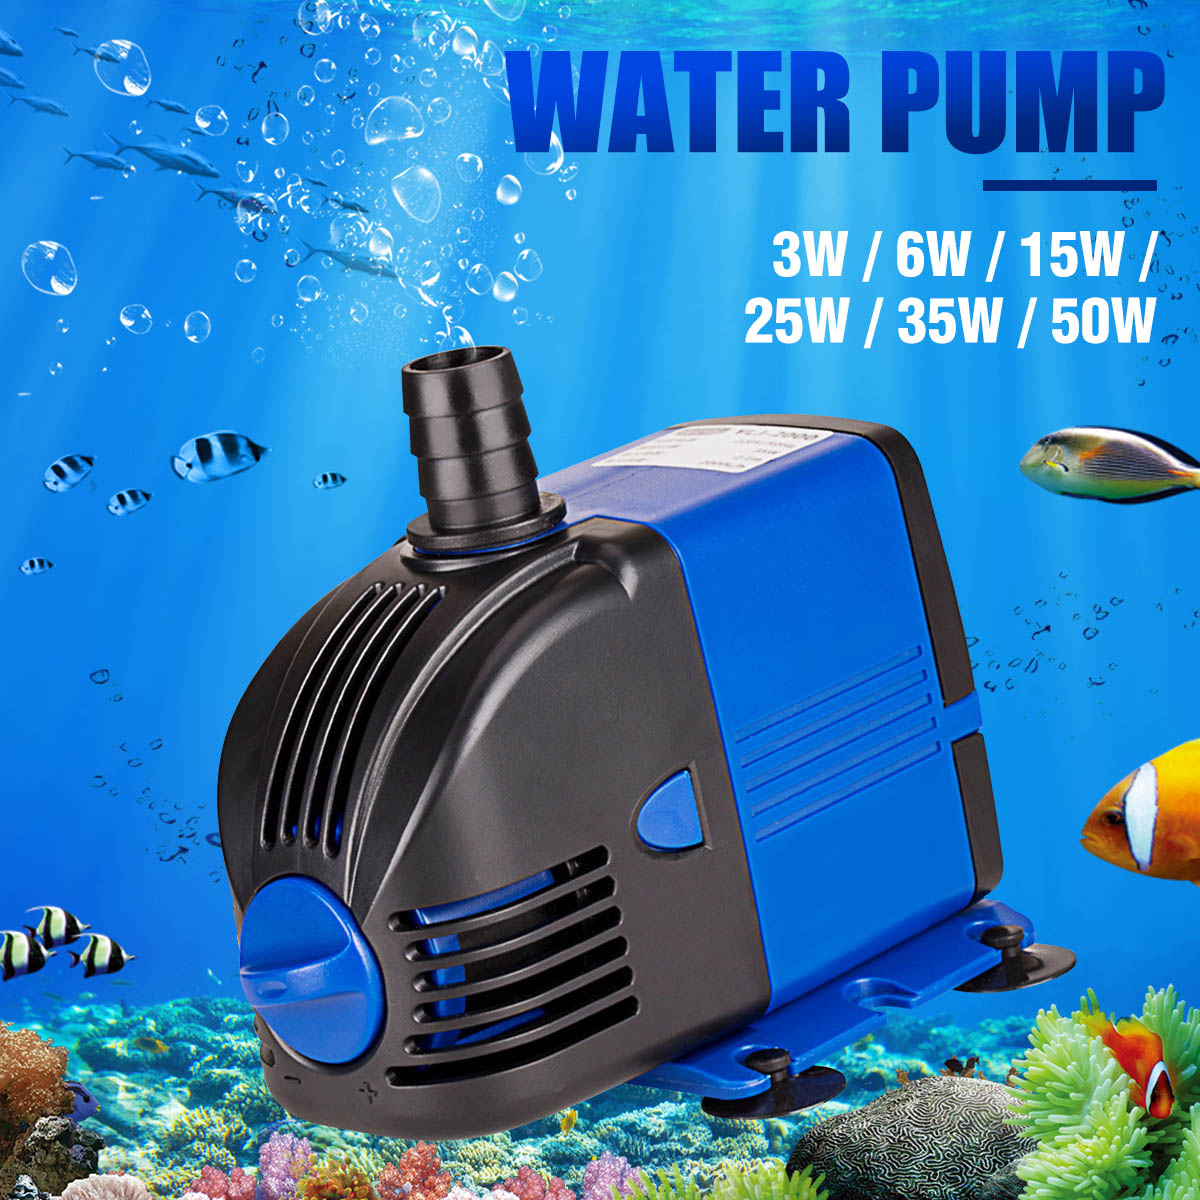 Submersible Aquarium <font><b>Water</b></font> <font><b>Pump</b></font> 3/6/15/25/35/50W Fish Tank Powerhead Fountain Hydroponic Ultra-quiet <font><b>Water</b></font> <font><b>Pumps</b></font> AC220-240V image